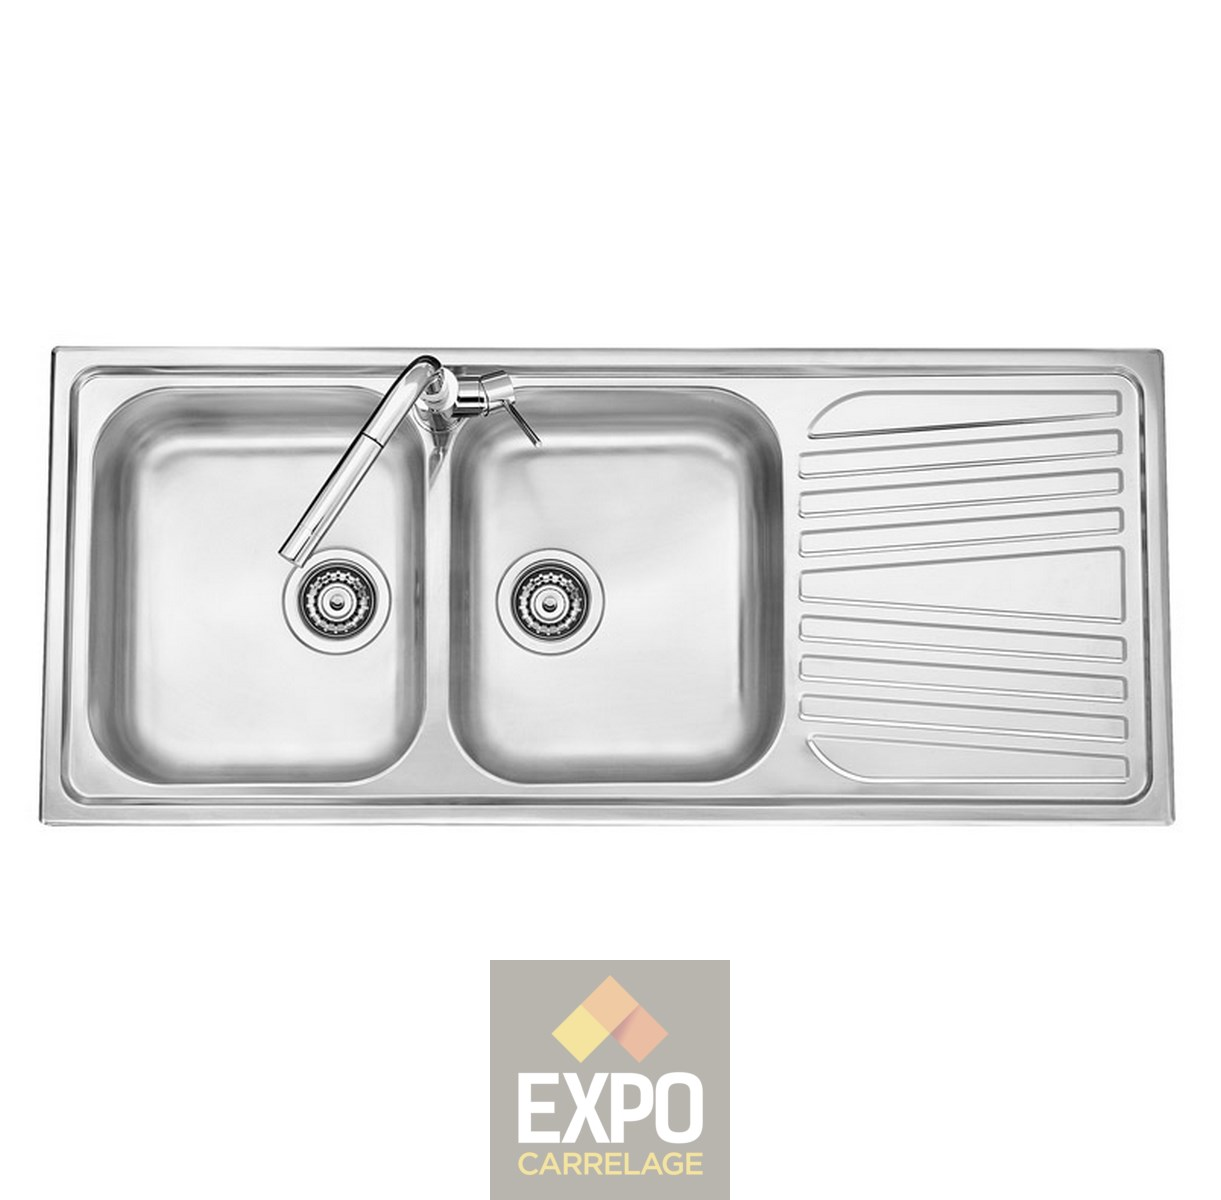 Evier inox olympus 2 bacs expo carrelage for Evier mural inox